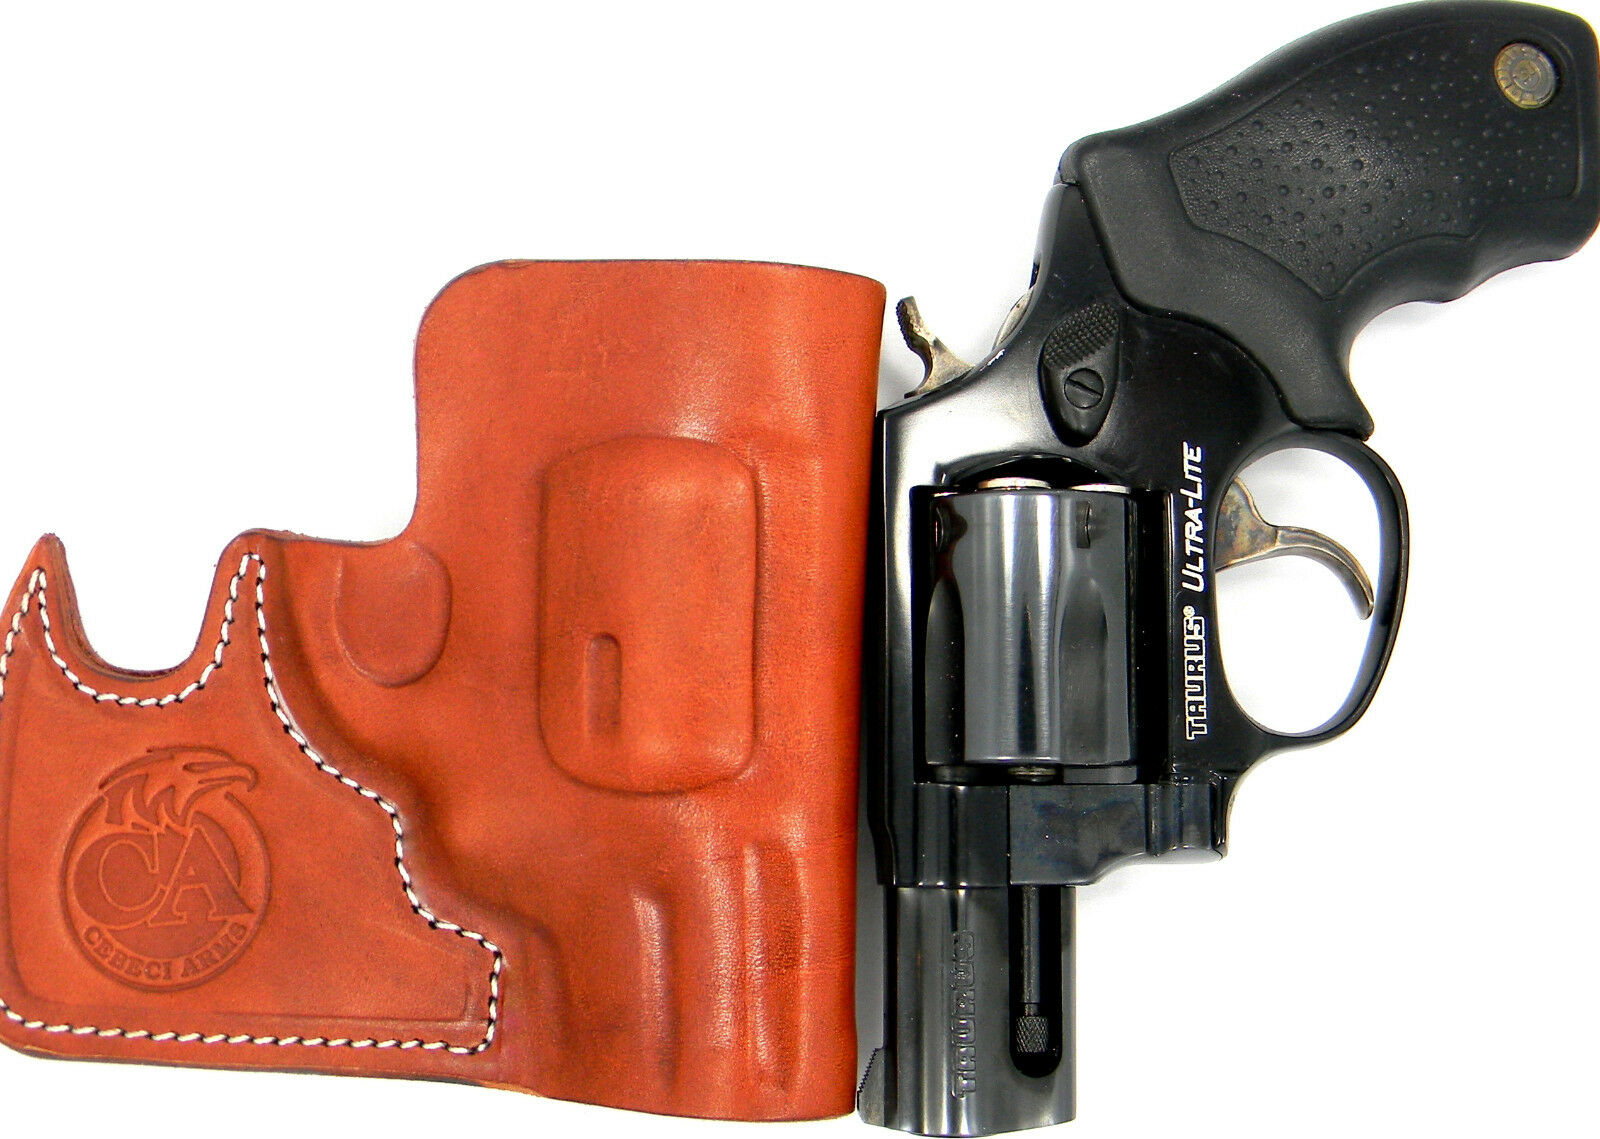 38 SPECIAL REVOLVER CEBECI FRONT POCKET BROWN LEATHER CCW CONCEALMENT HOLSTER